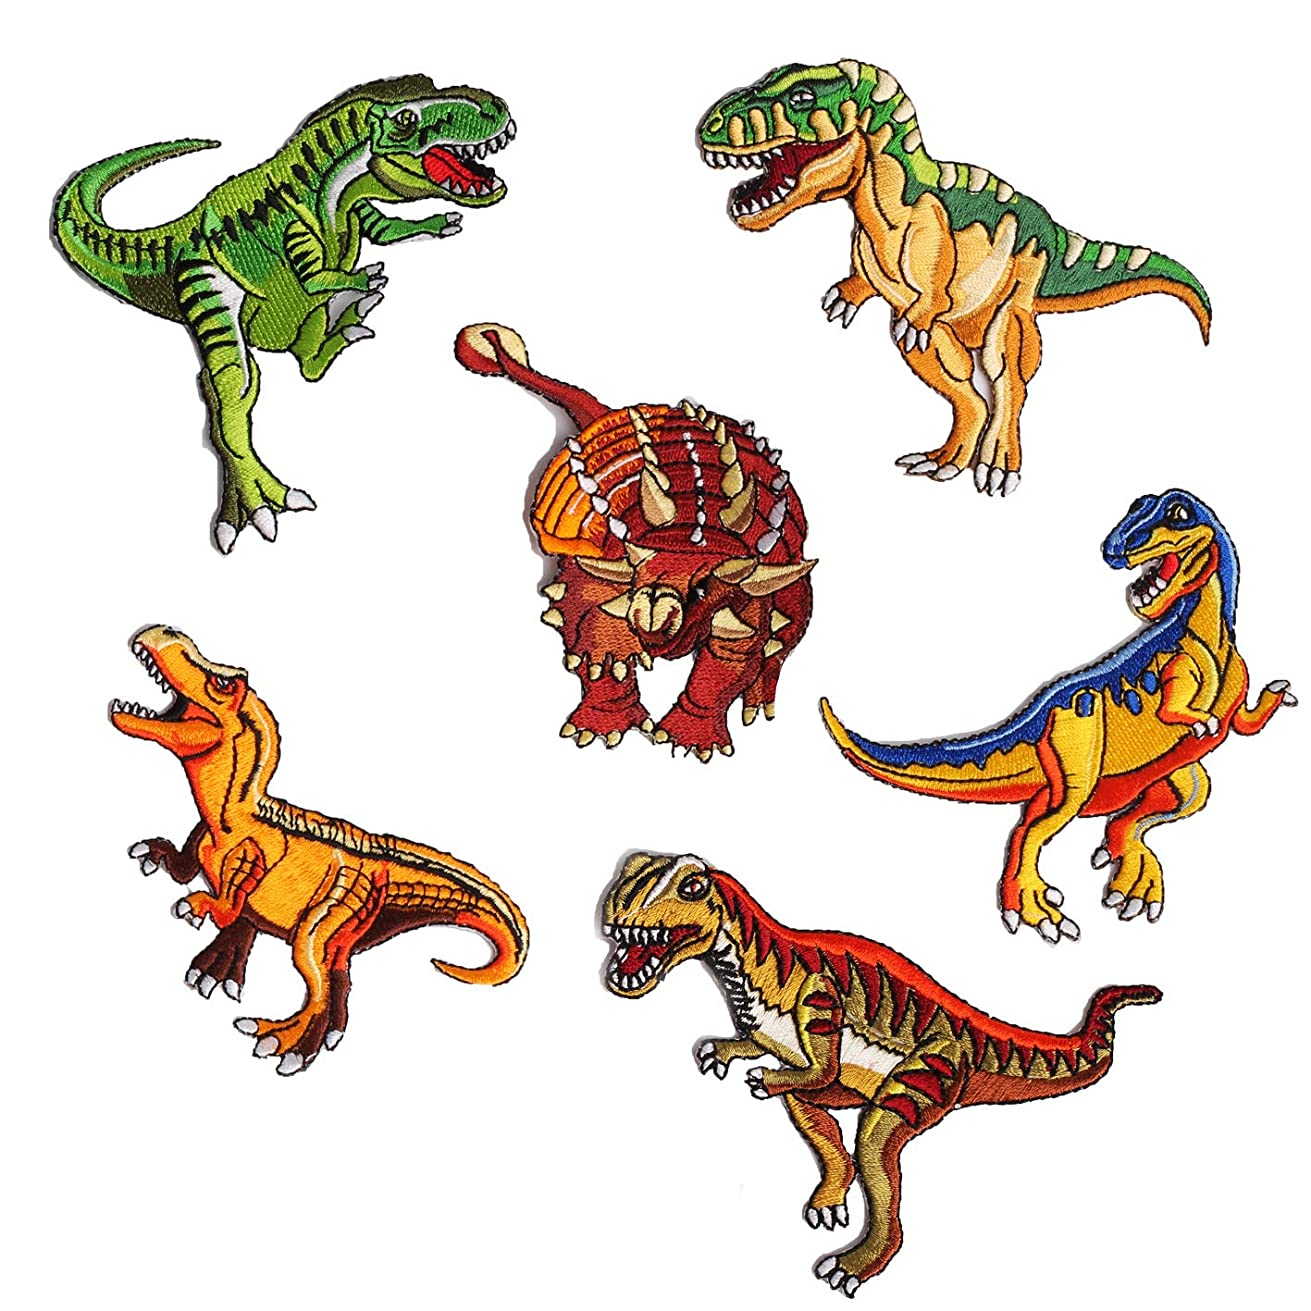 Juland 6 PCS Dinosaur Embroidered Patches Self Adhesive Embroidered Custom Backpack Patches for Men, Women, Boys, Girls, Kids